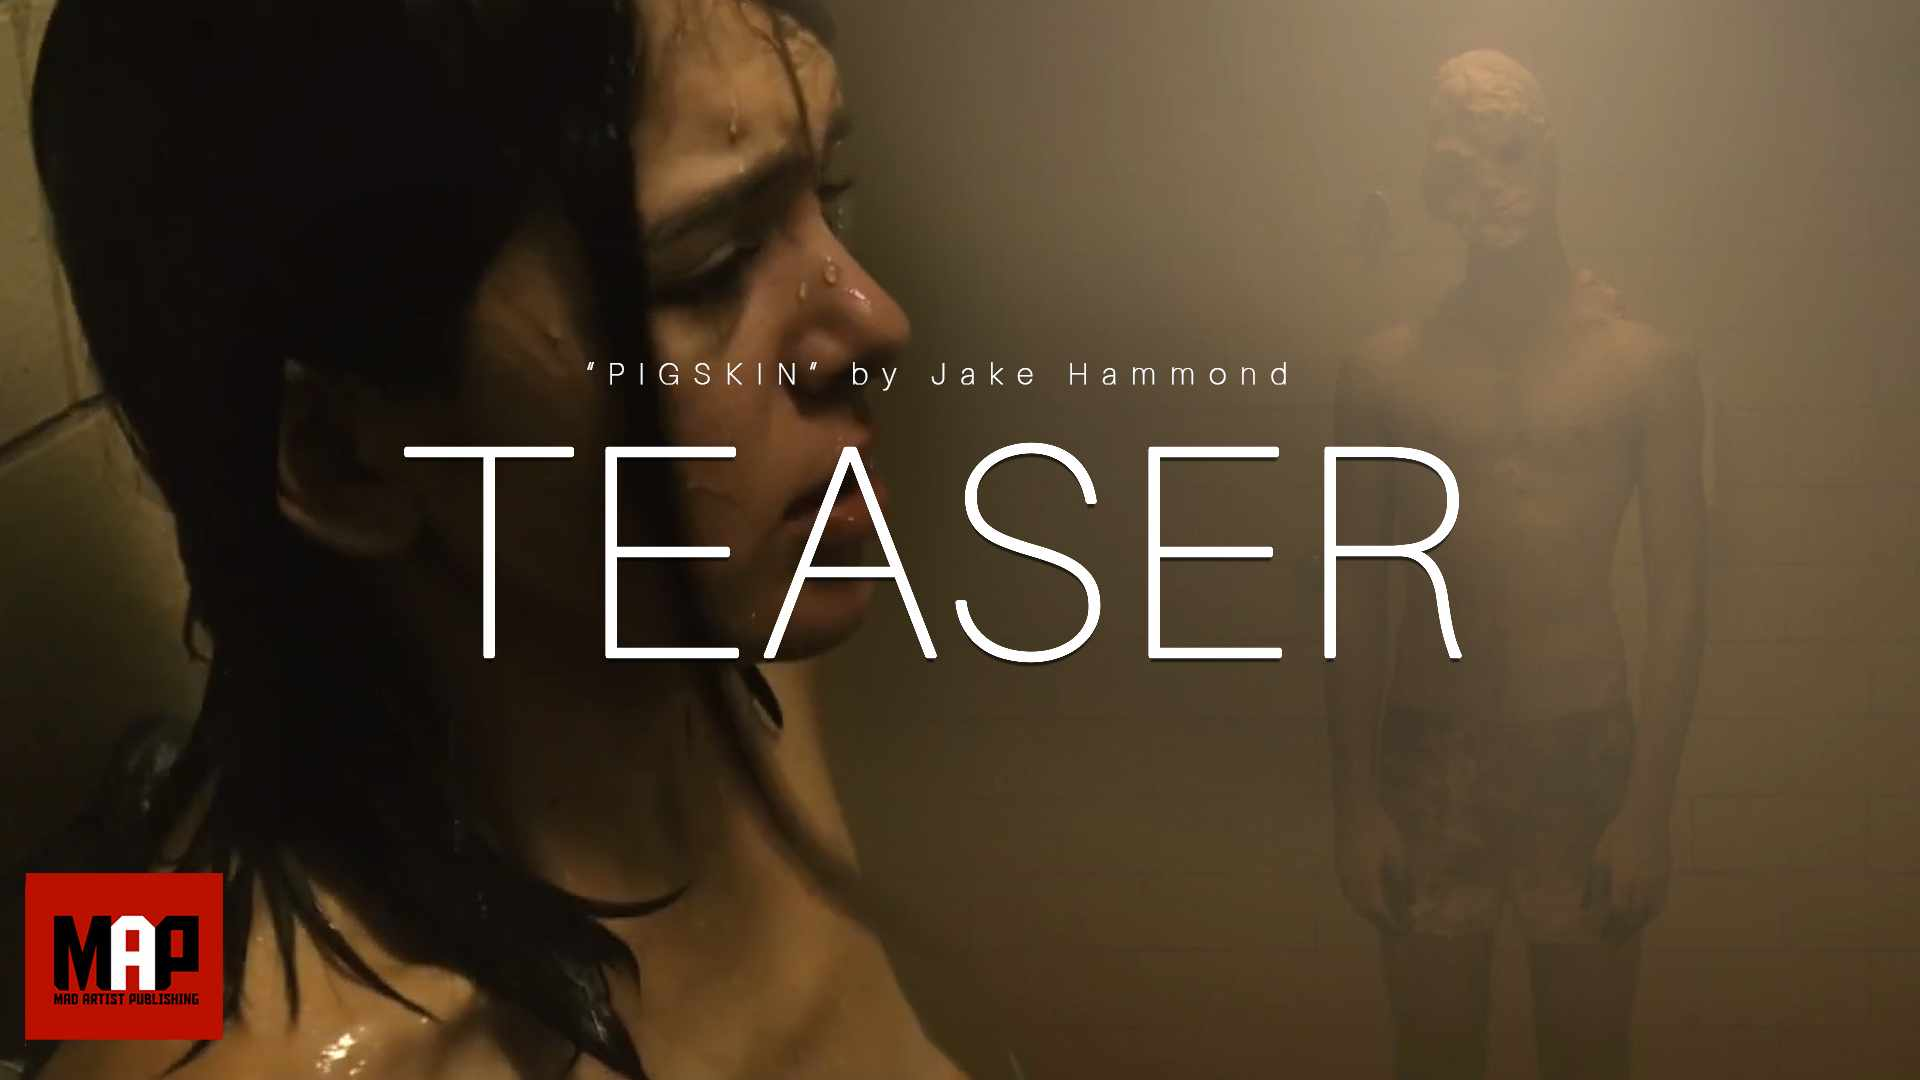 TEASER Trailer | Horror Short Film ** PIGSKIN ** Uncensored Thriller by Jake Hammond & N Newton